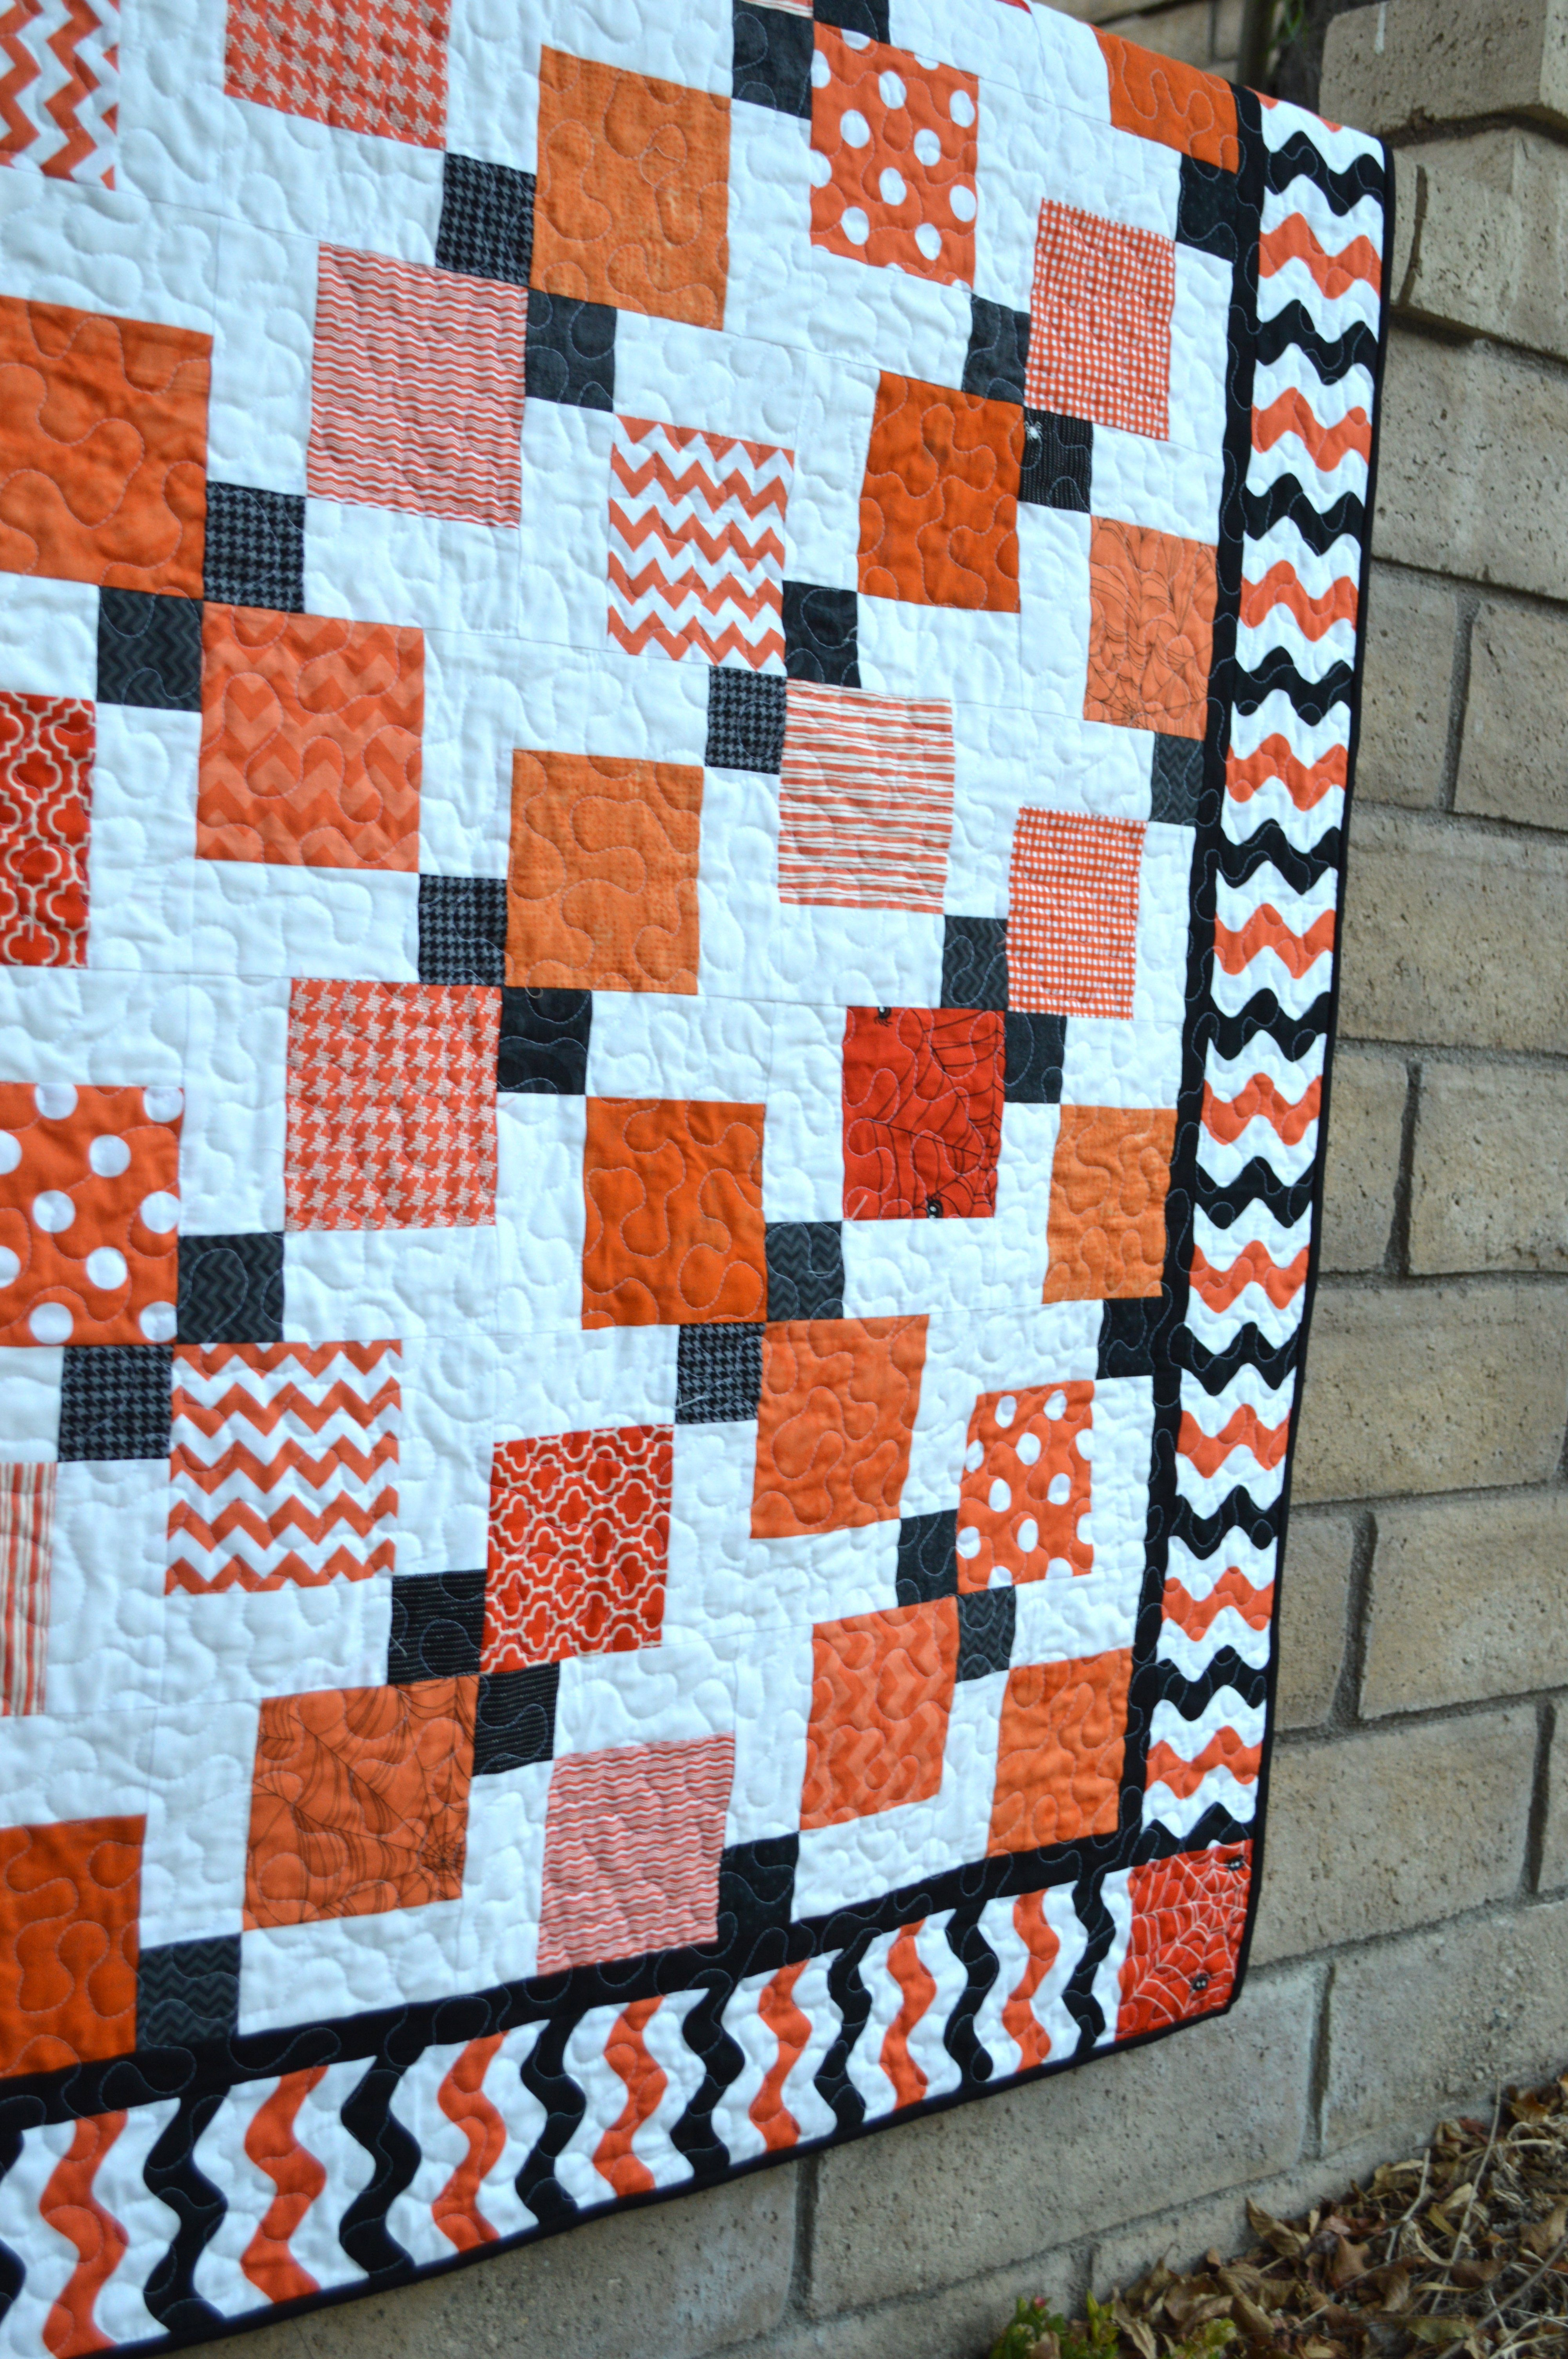 Disearing 9 Patch Quilt Tutorial By Jedi Craft Featuring Black Orange Wave Fabric From Riley Blake Designs